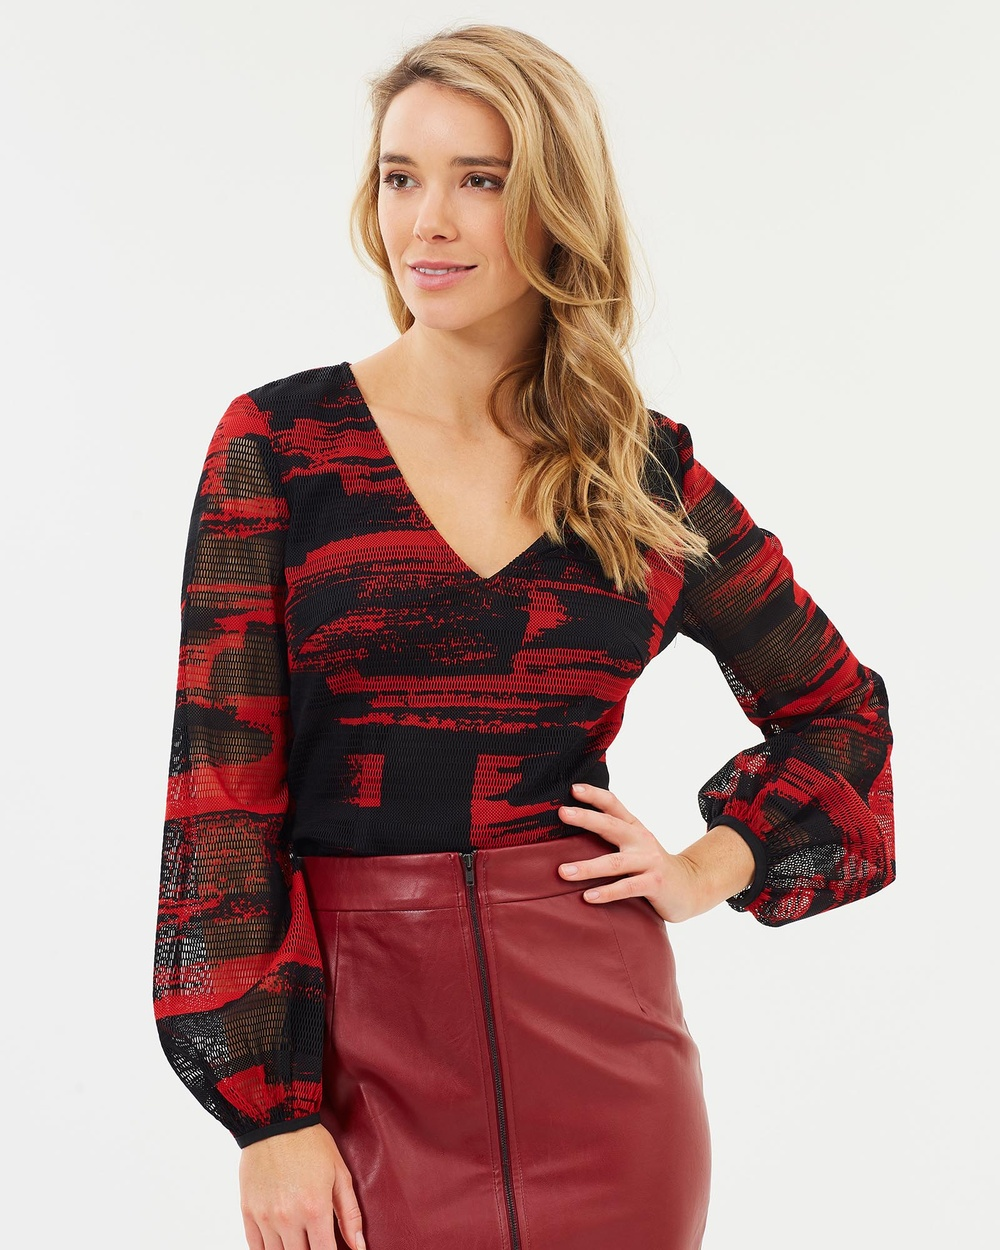 Honey and Beau Spectra Top Tops Red Print Spectra Top